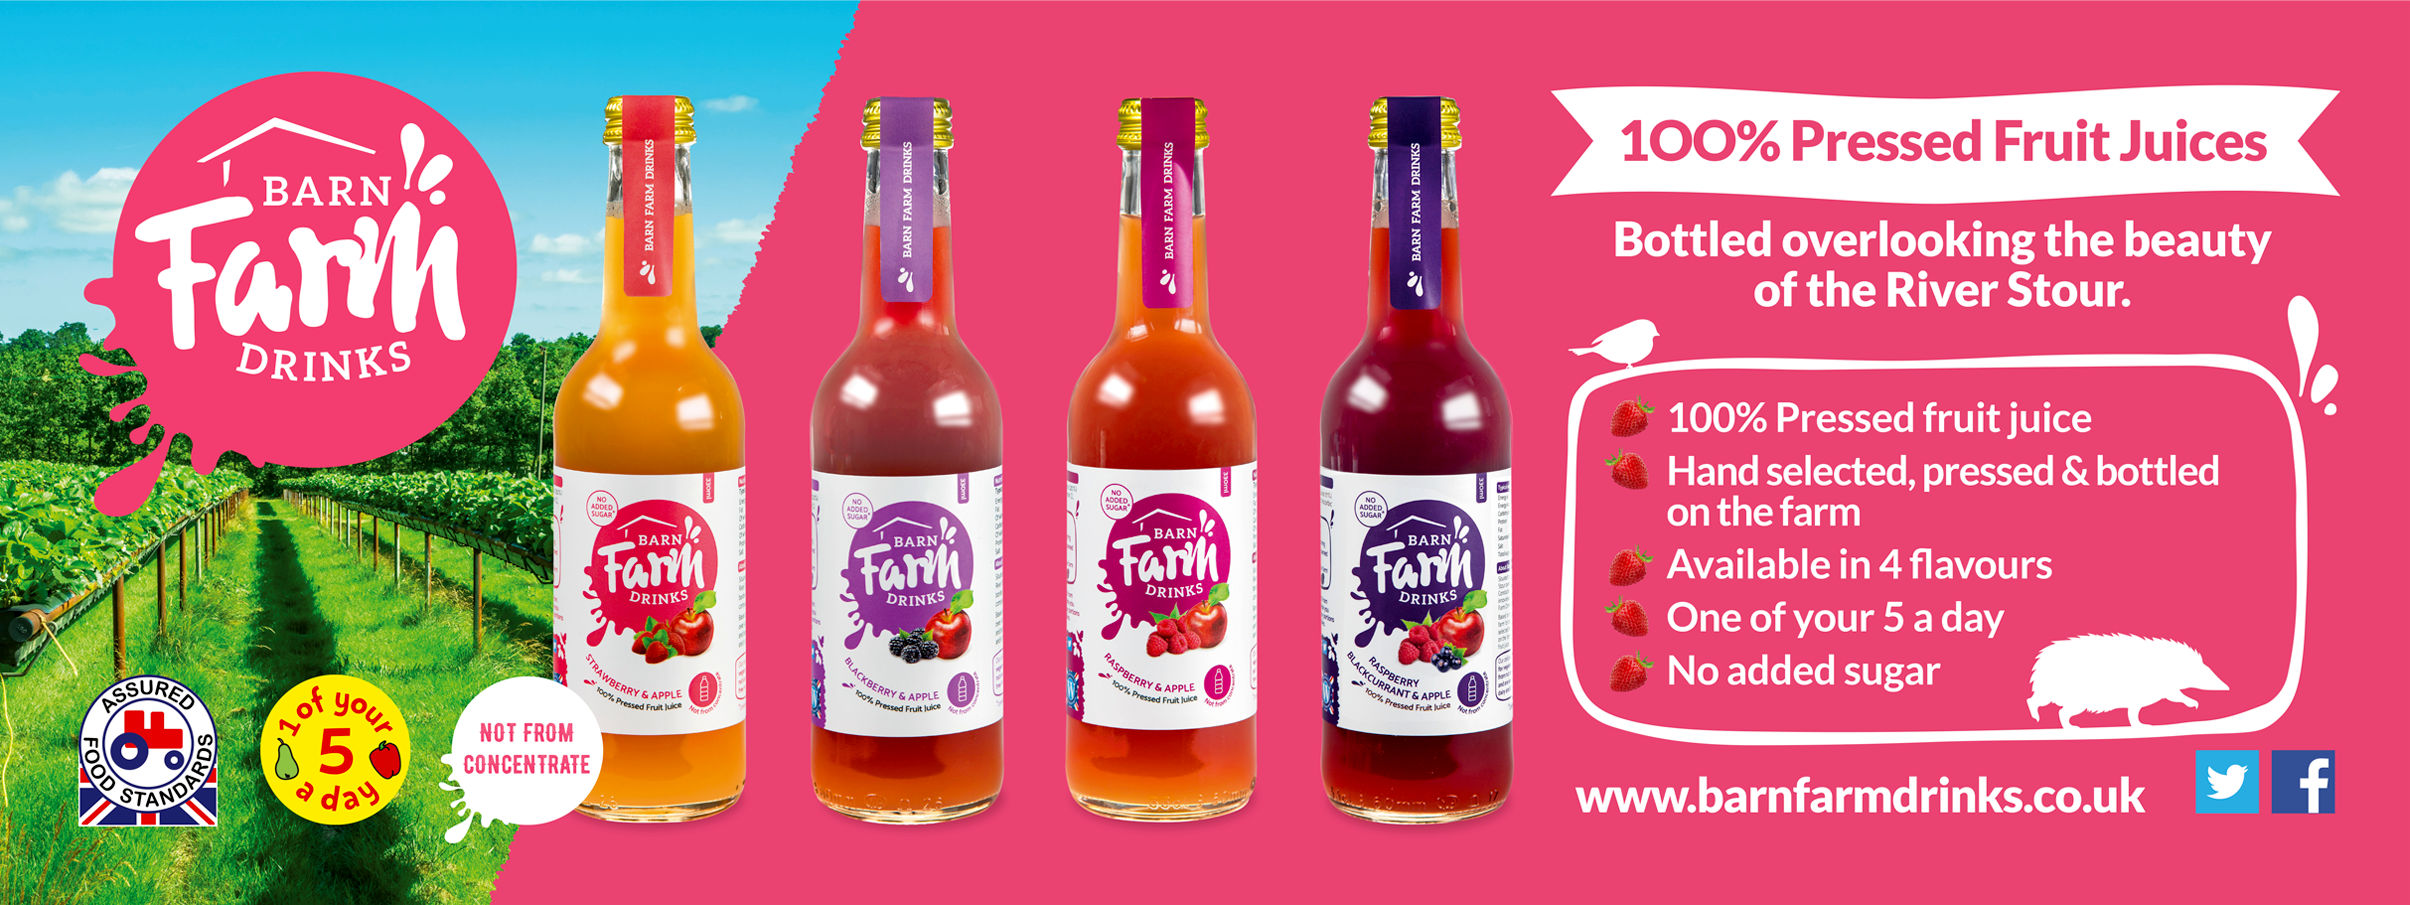 Barn Farm Drinks social media banner